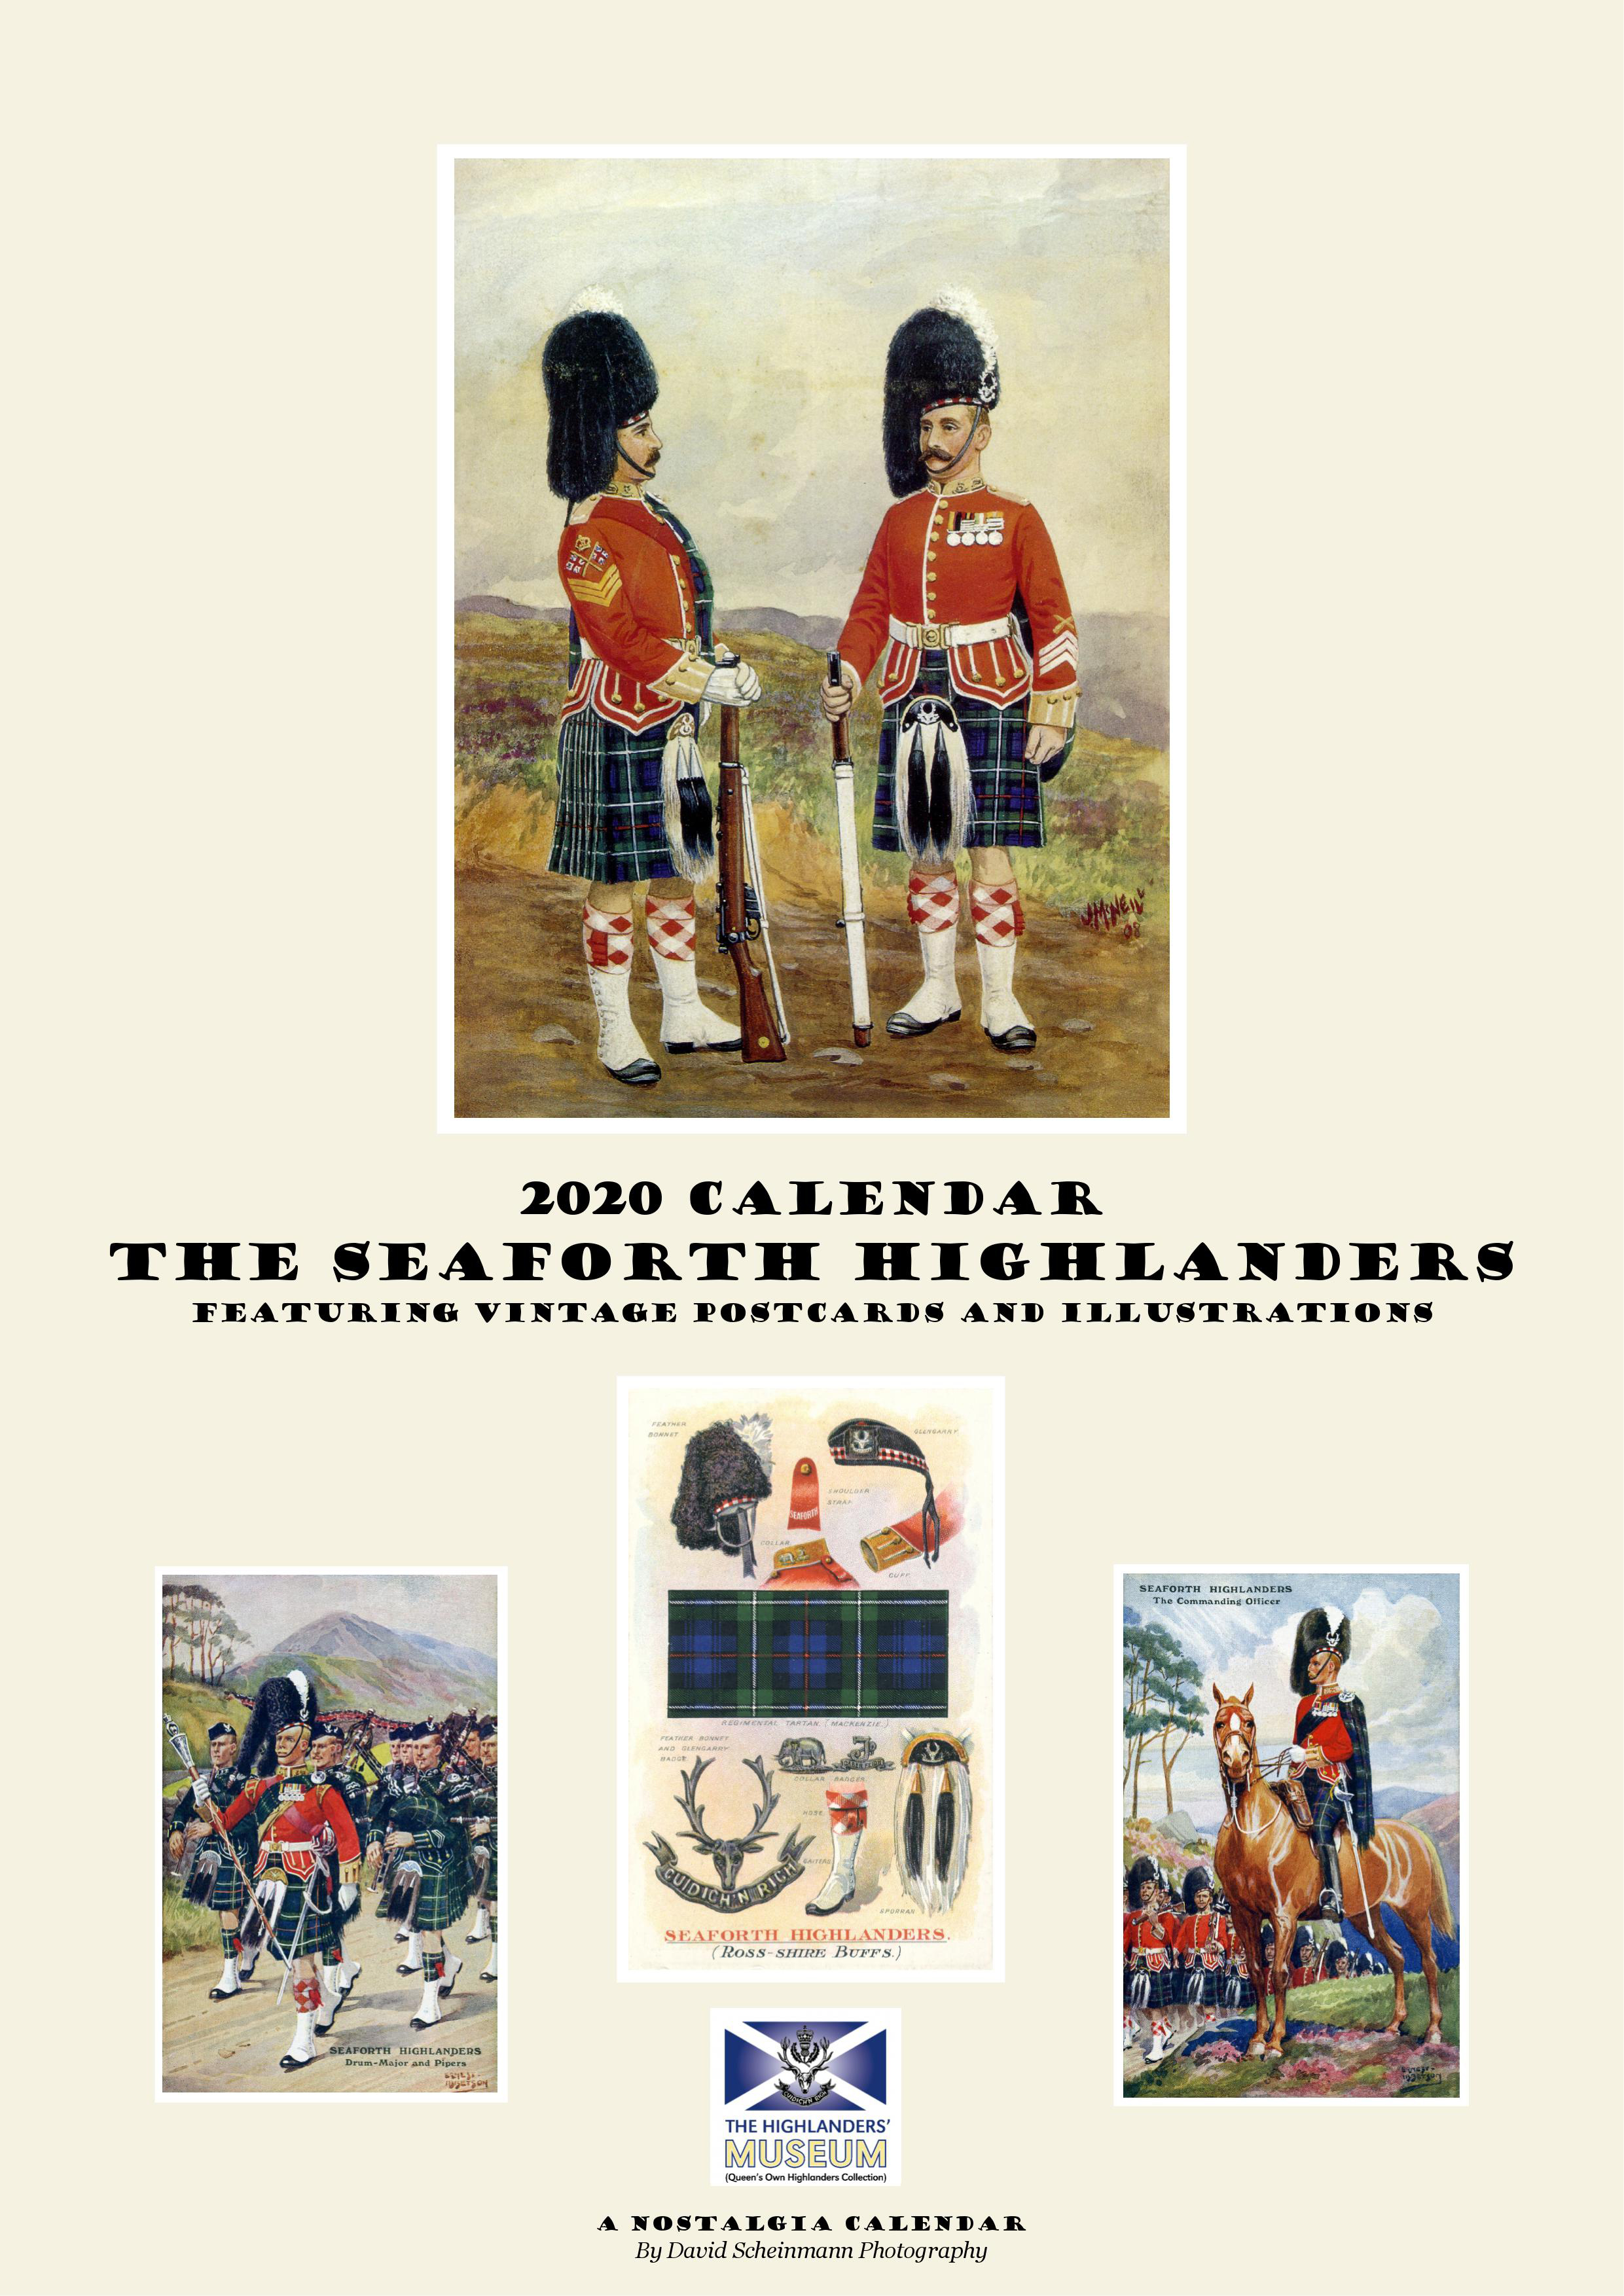 The Seaforth Highlanders 2020 Calendar